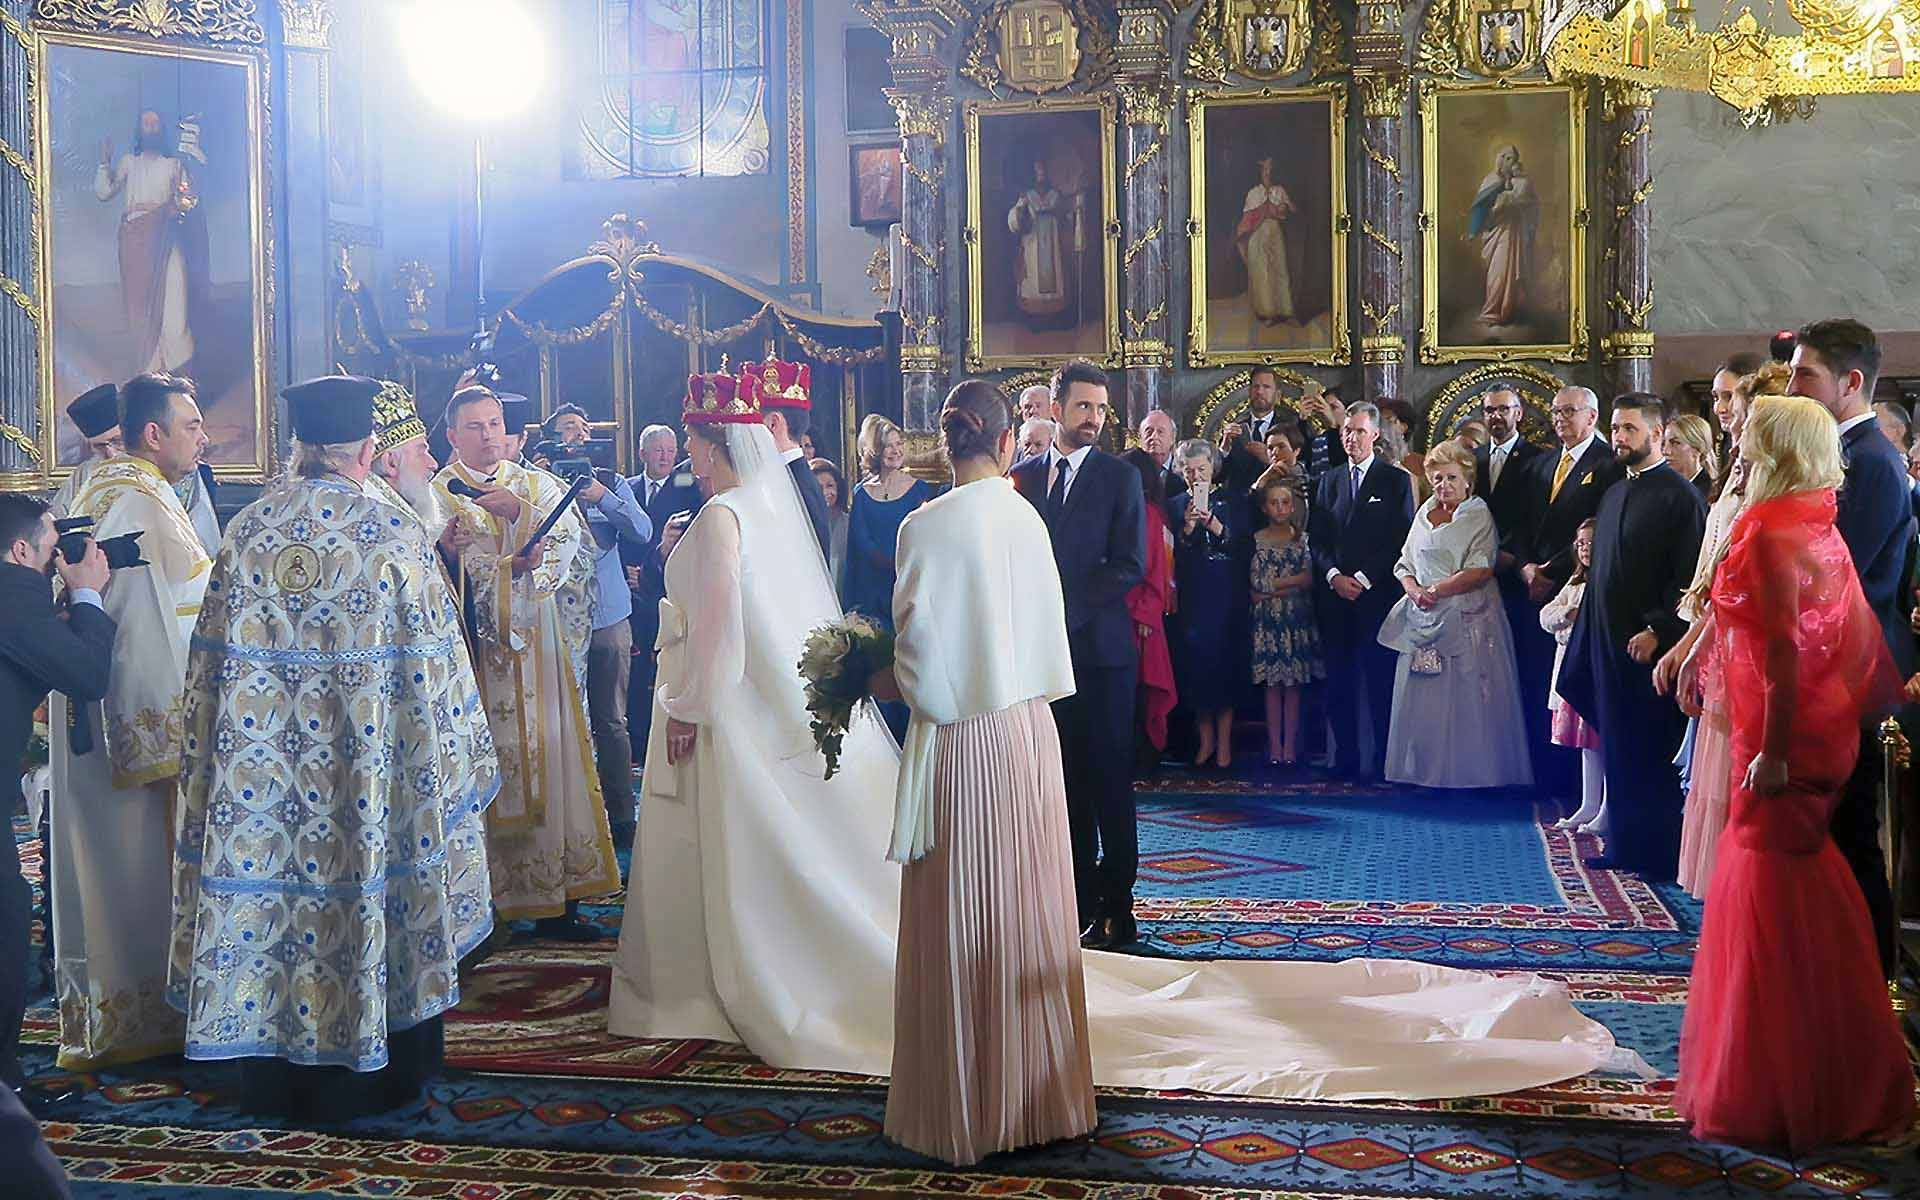 A-Royal-Wedding-of-HRH-Prince-Philip-and-Princess-Danica-in-Belgrade.-Our-Participation-was-an-honor